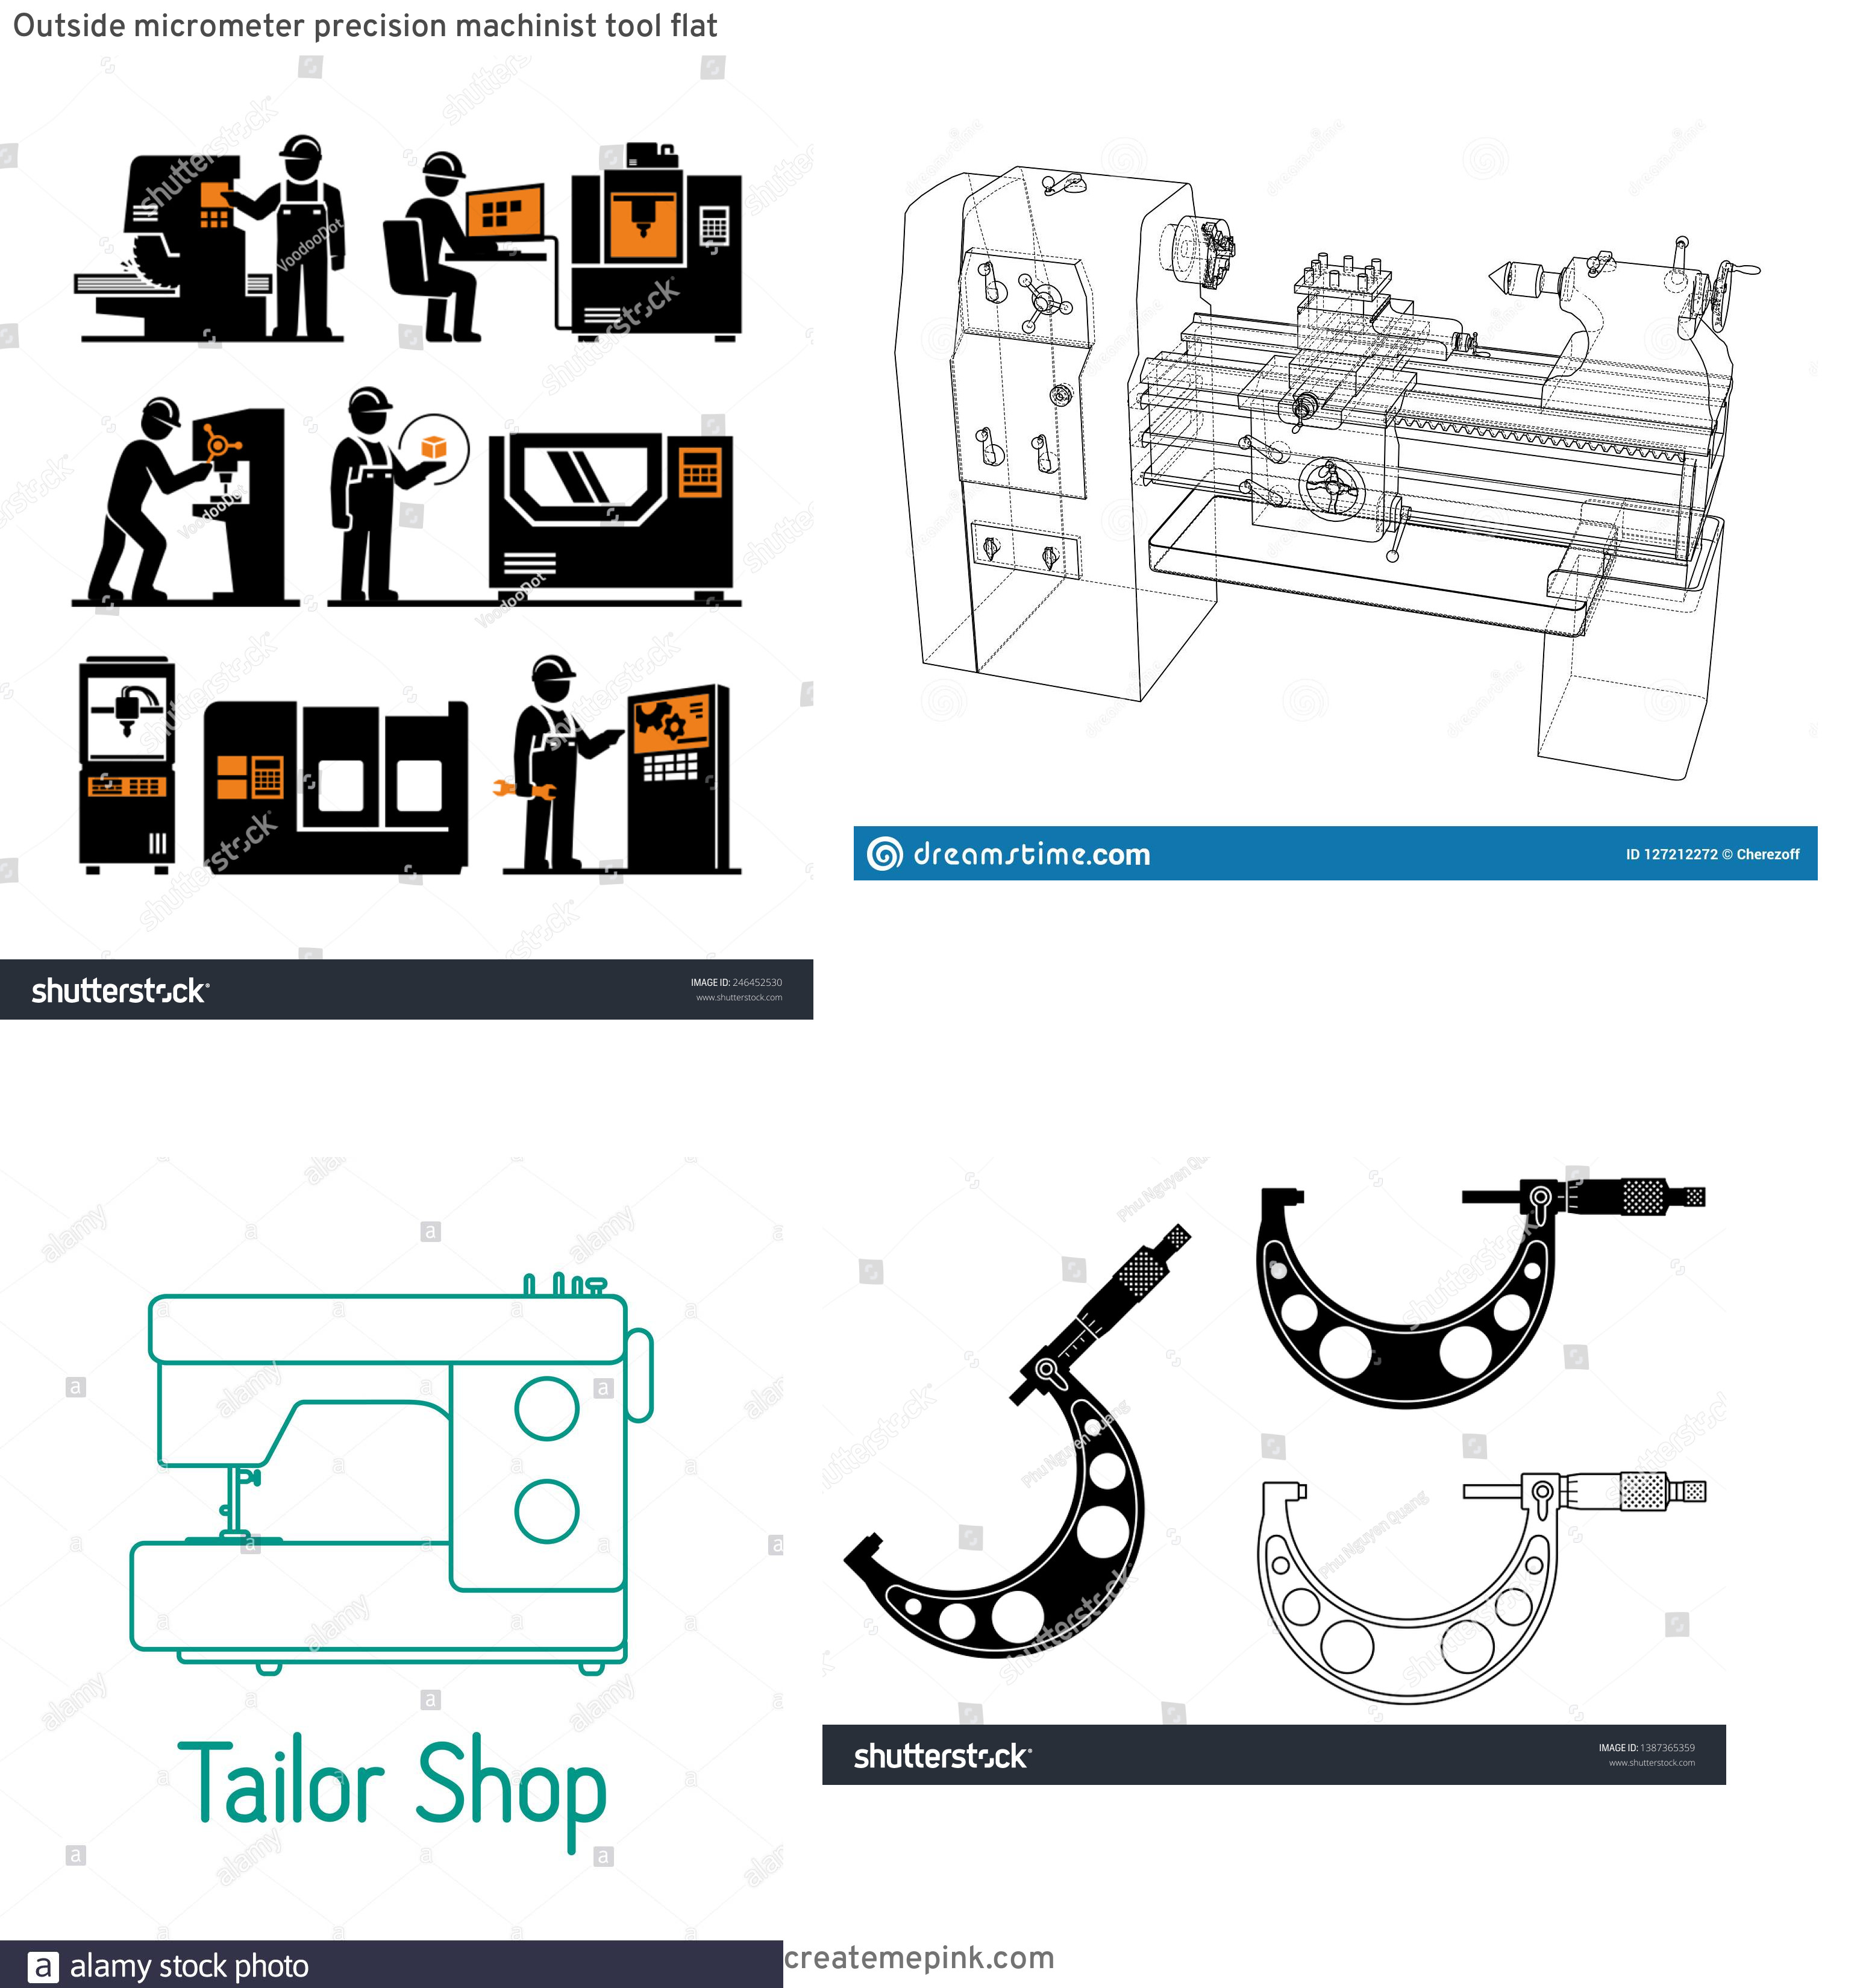 Machinist Tools Vector Logo: Outside Micrometer Precision Machinist Tool Flat